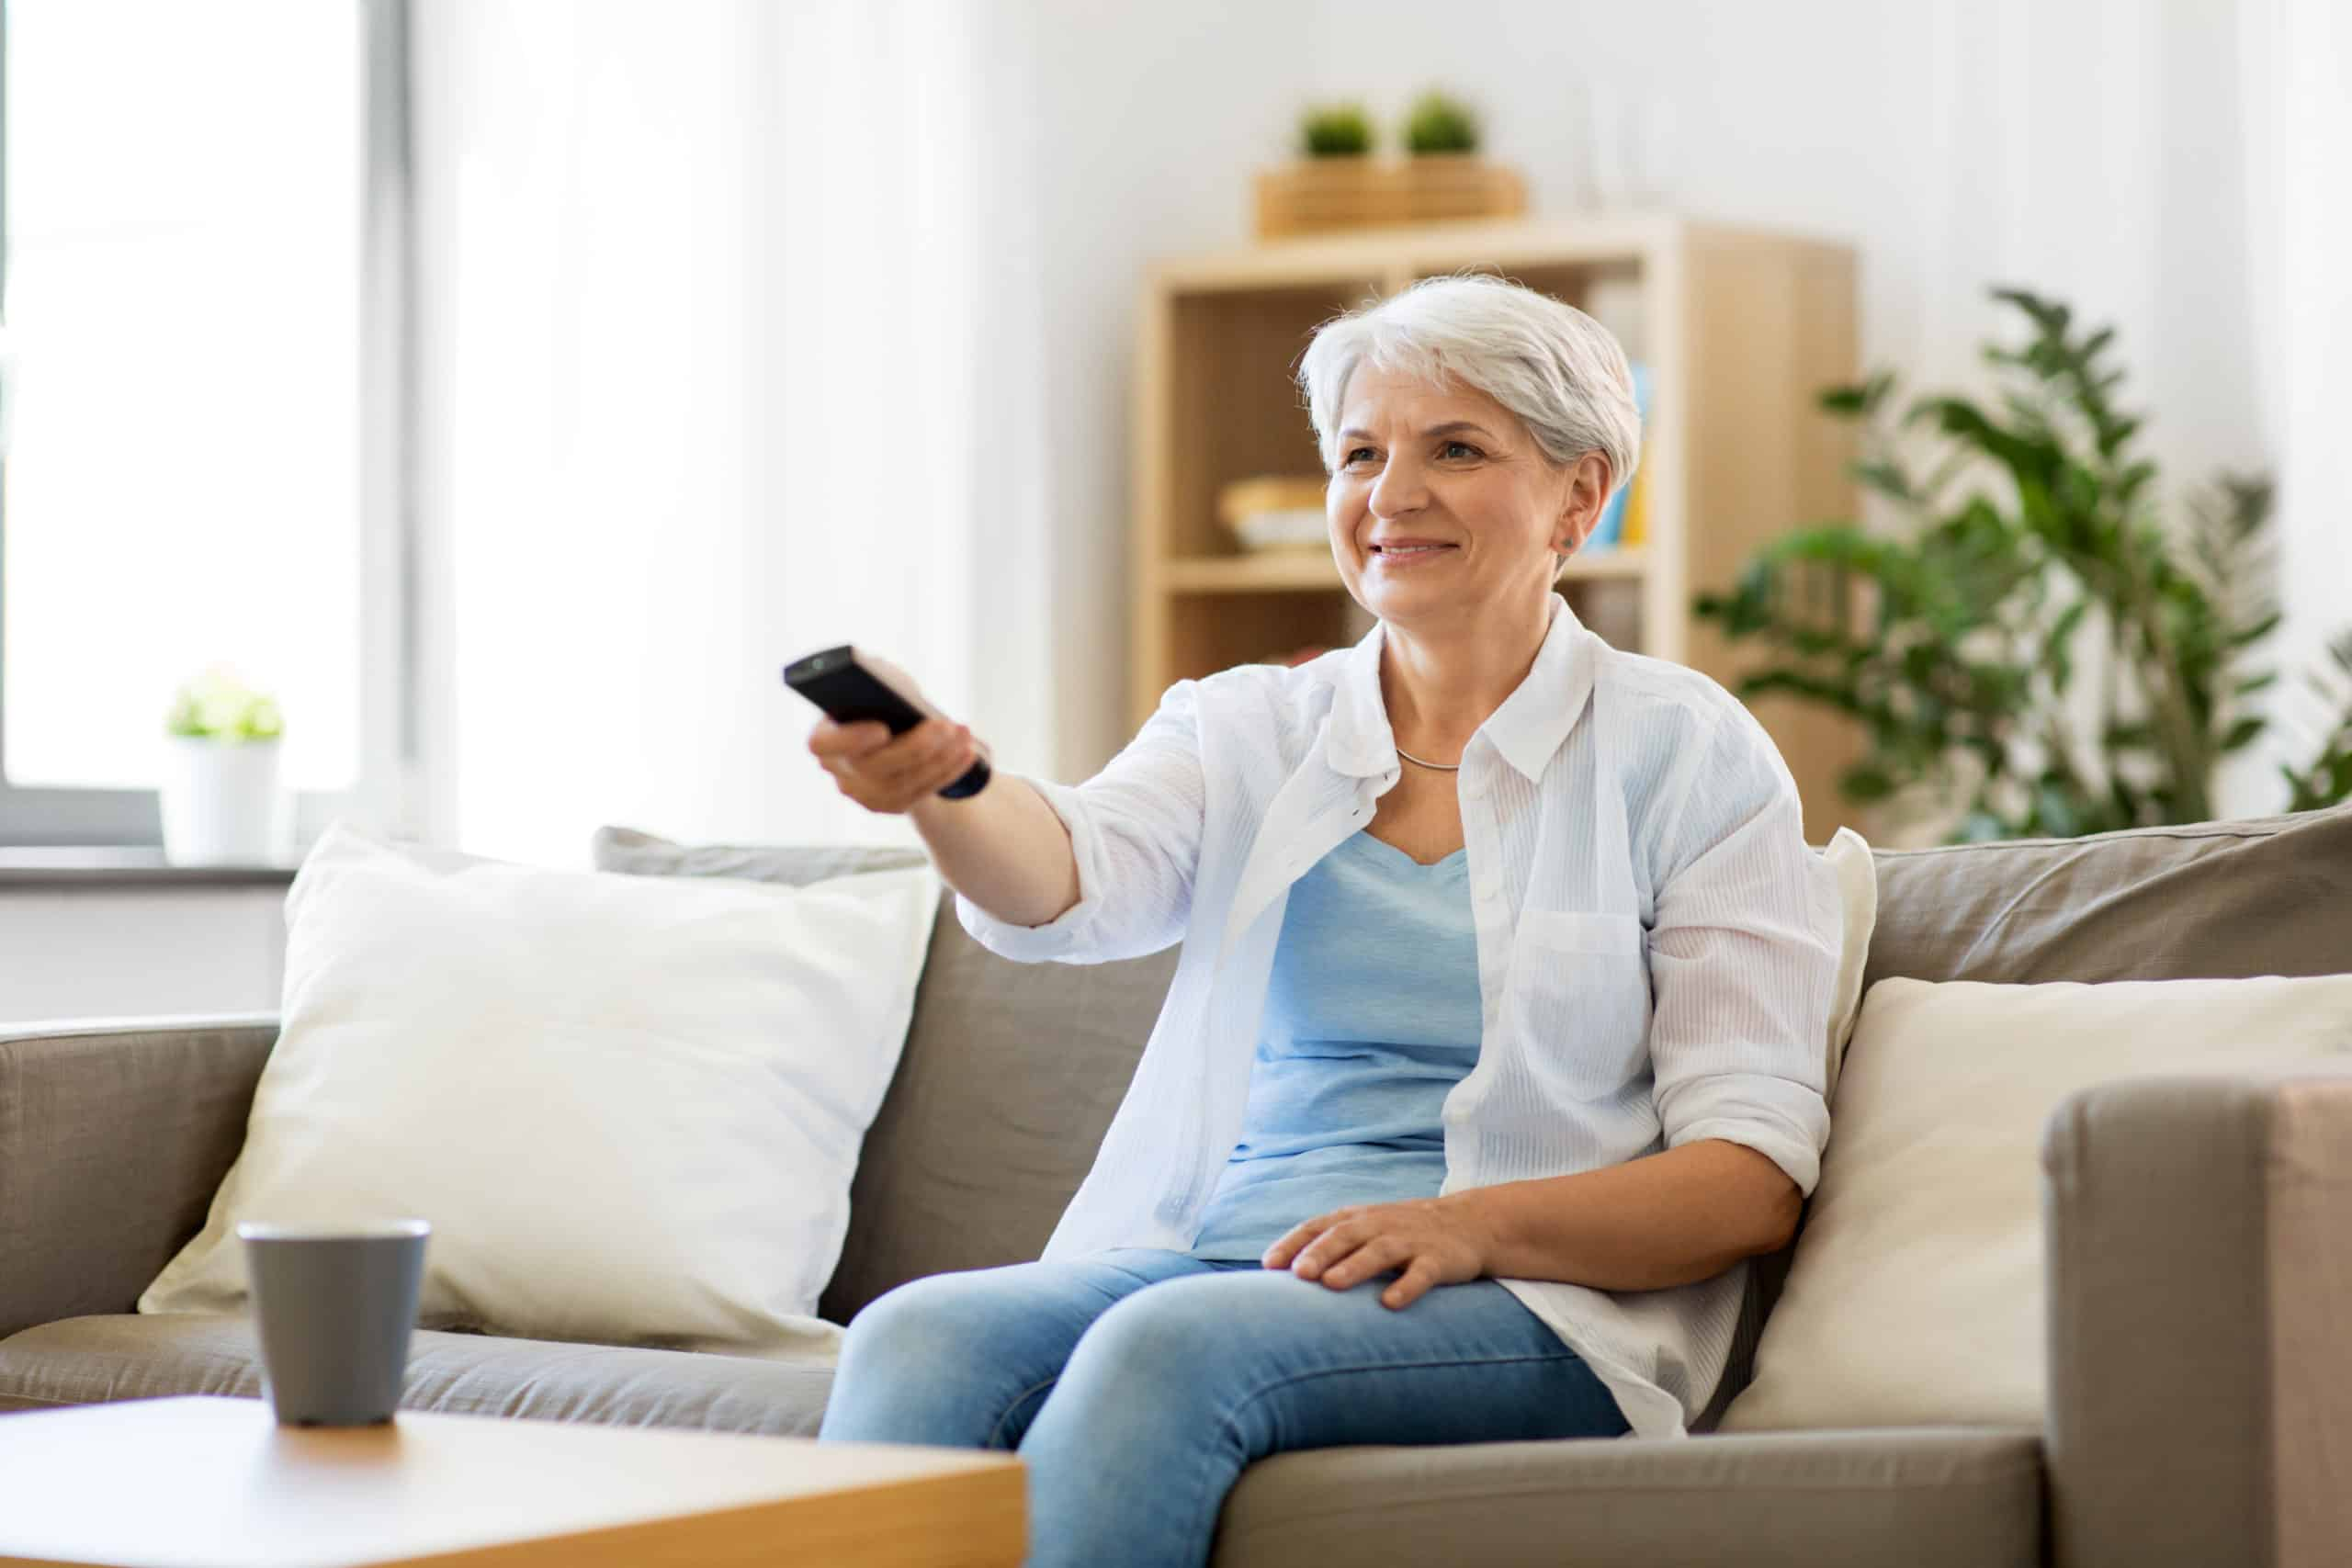 senior woman in eyeglasses with remote control watching tv at home